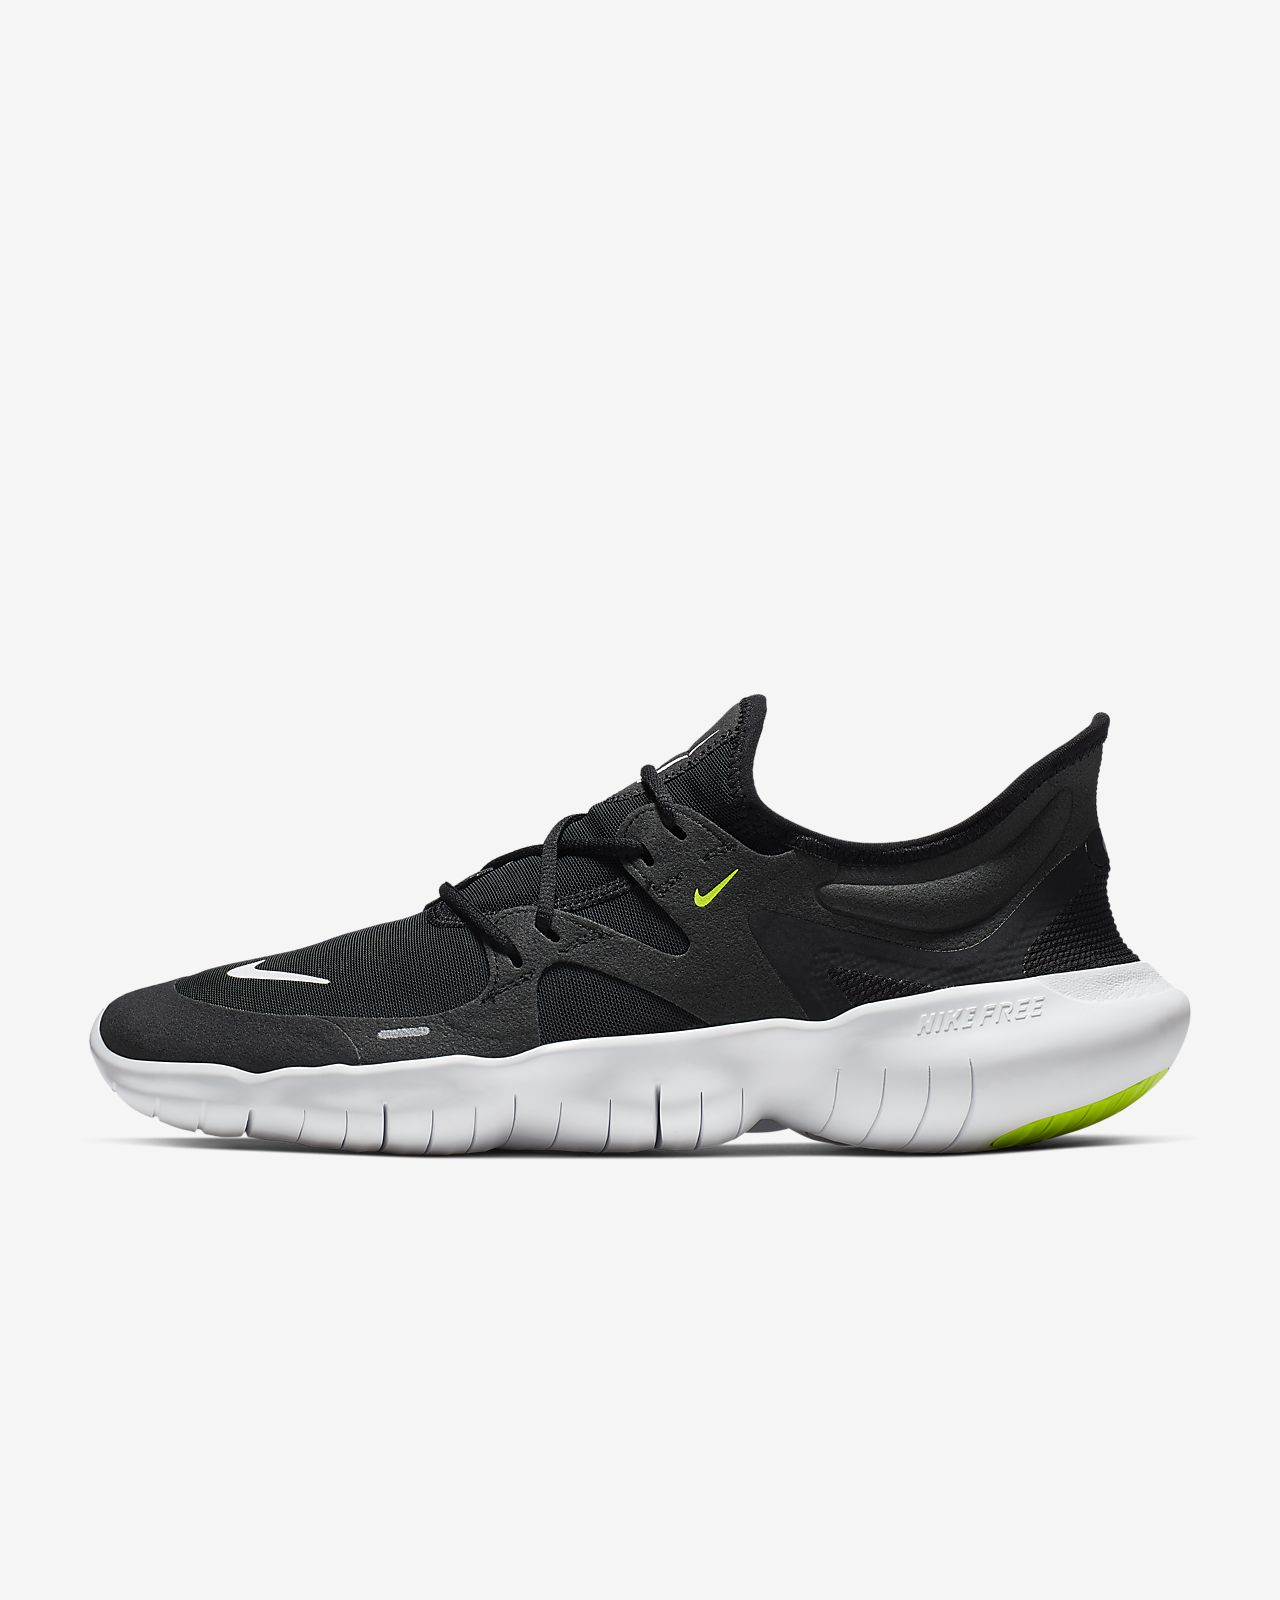 the best attitude dfd5e 802c4 Nike Free RN 5.0 Men's Running Shoe